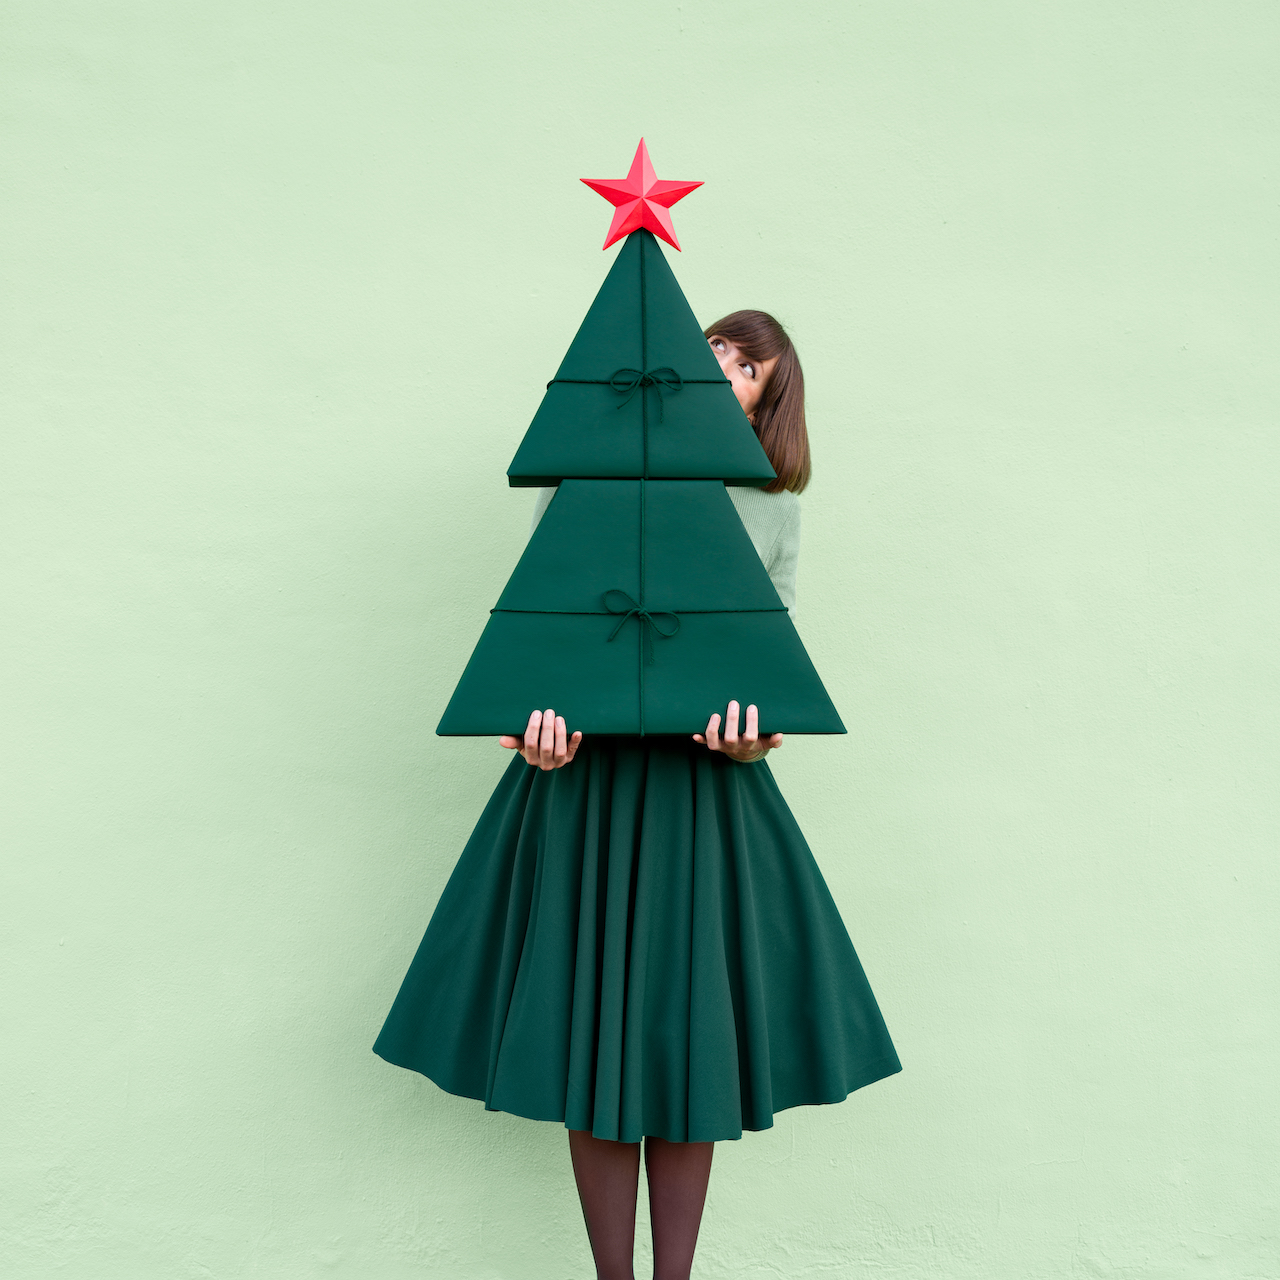 Annandaniel Anna Devís Daniel Rueda Anniset DrCuerda Artist Creative Minimal Photography Paper Art Creativity Imagination DIY Papel creatividad Hasselblad Christmas Tree Holiday Gifts Wrapping paper DIY Skirt green perspective illusion perspectiva árbol navidad